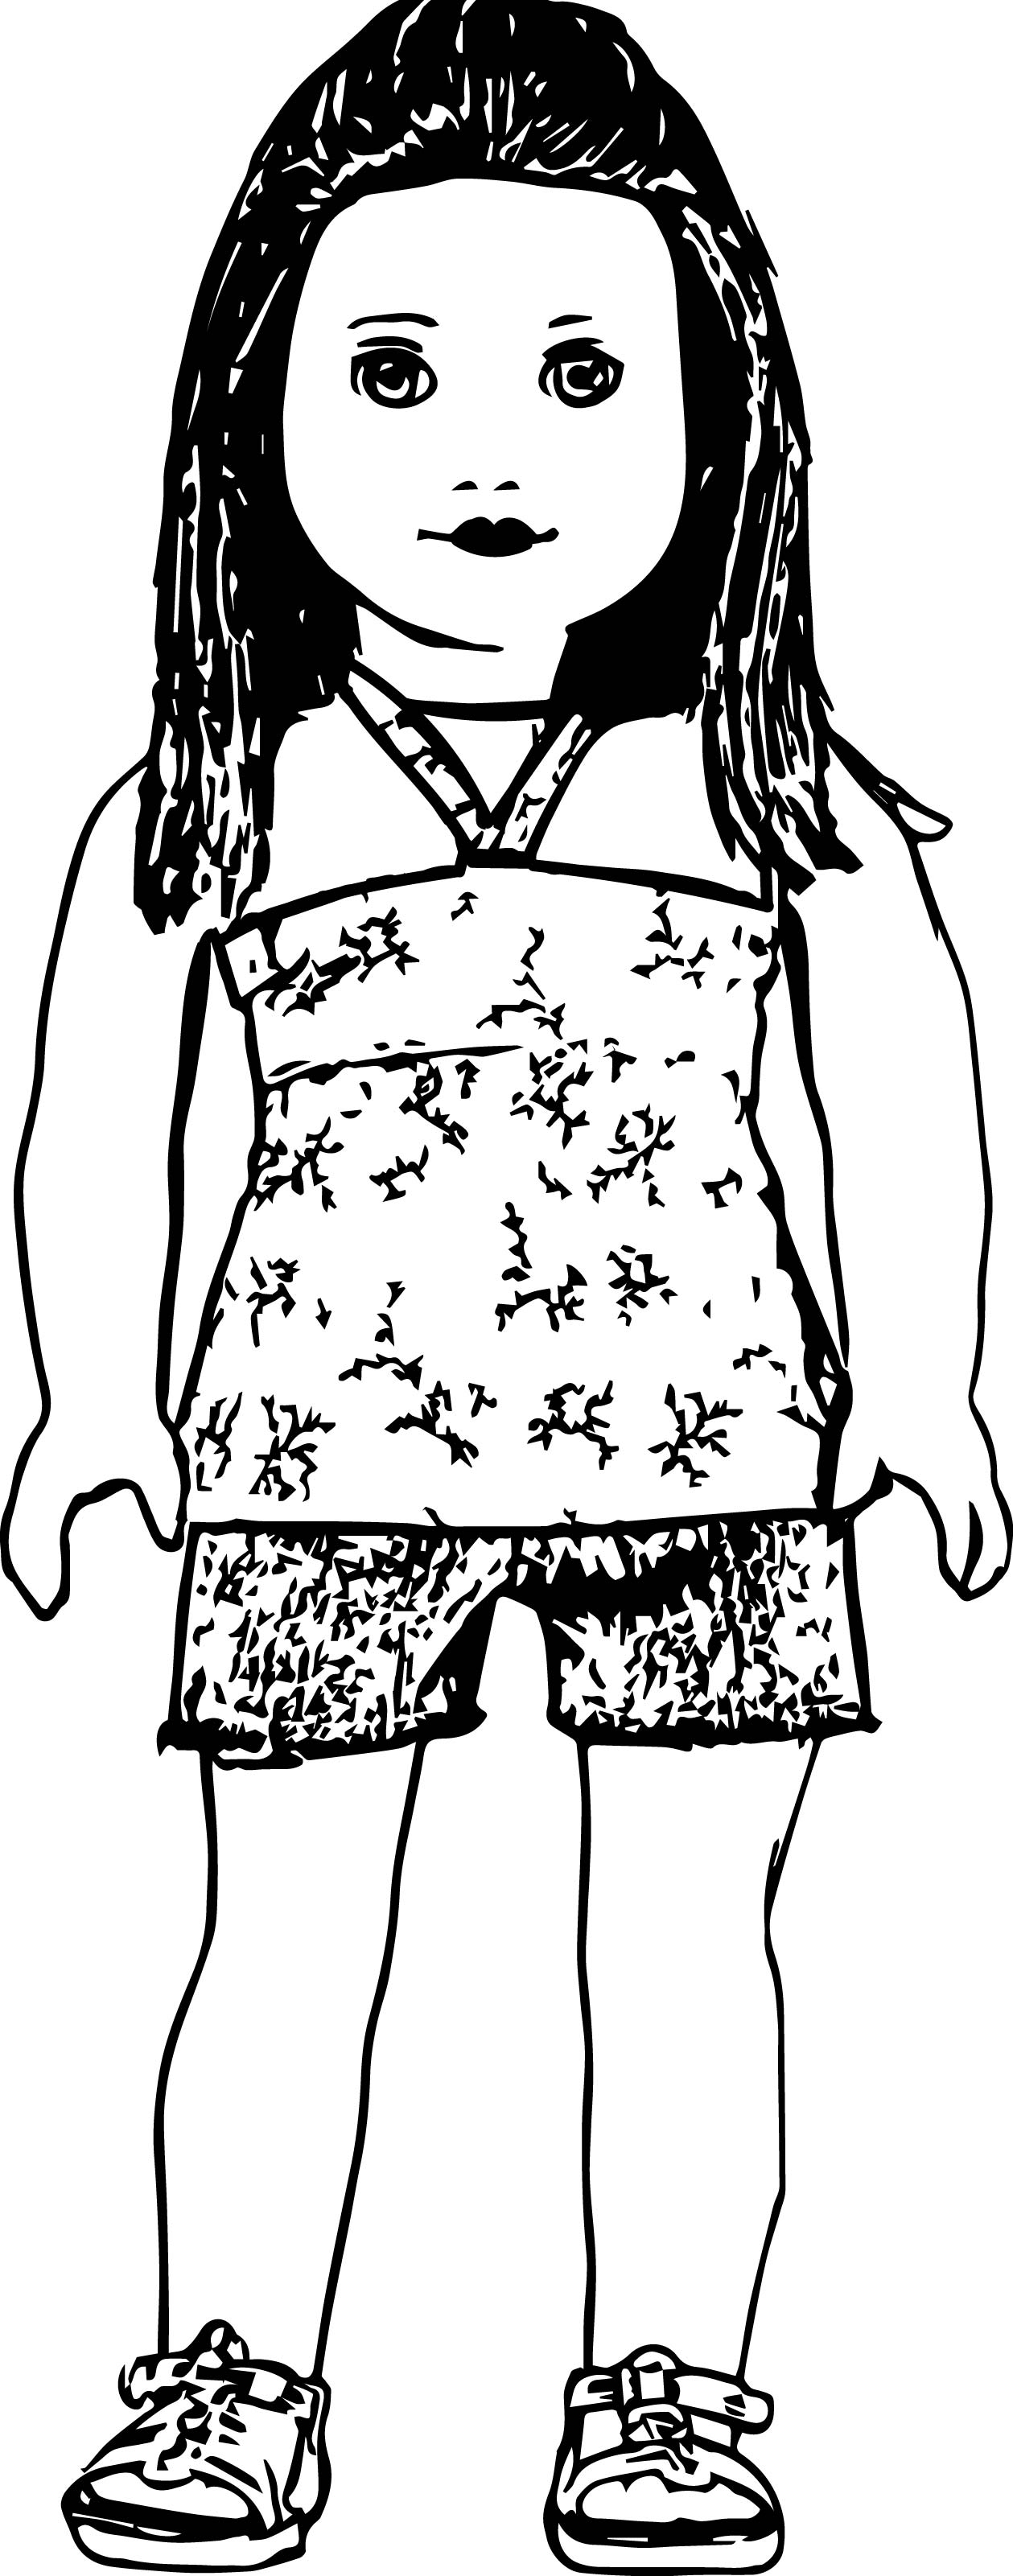 american girl printable coloring pages - photo#24